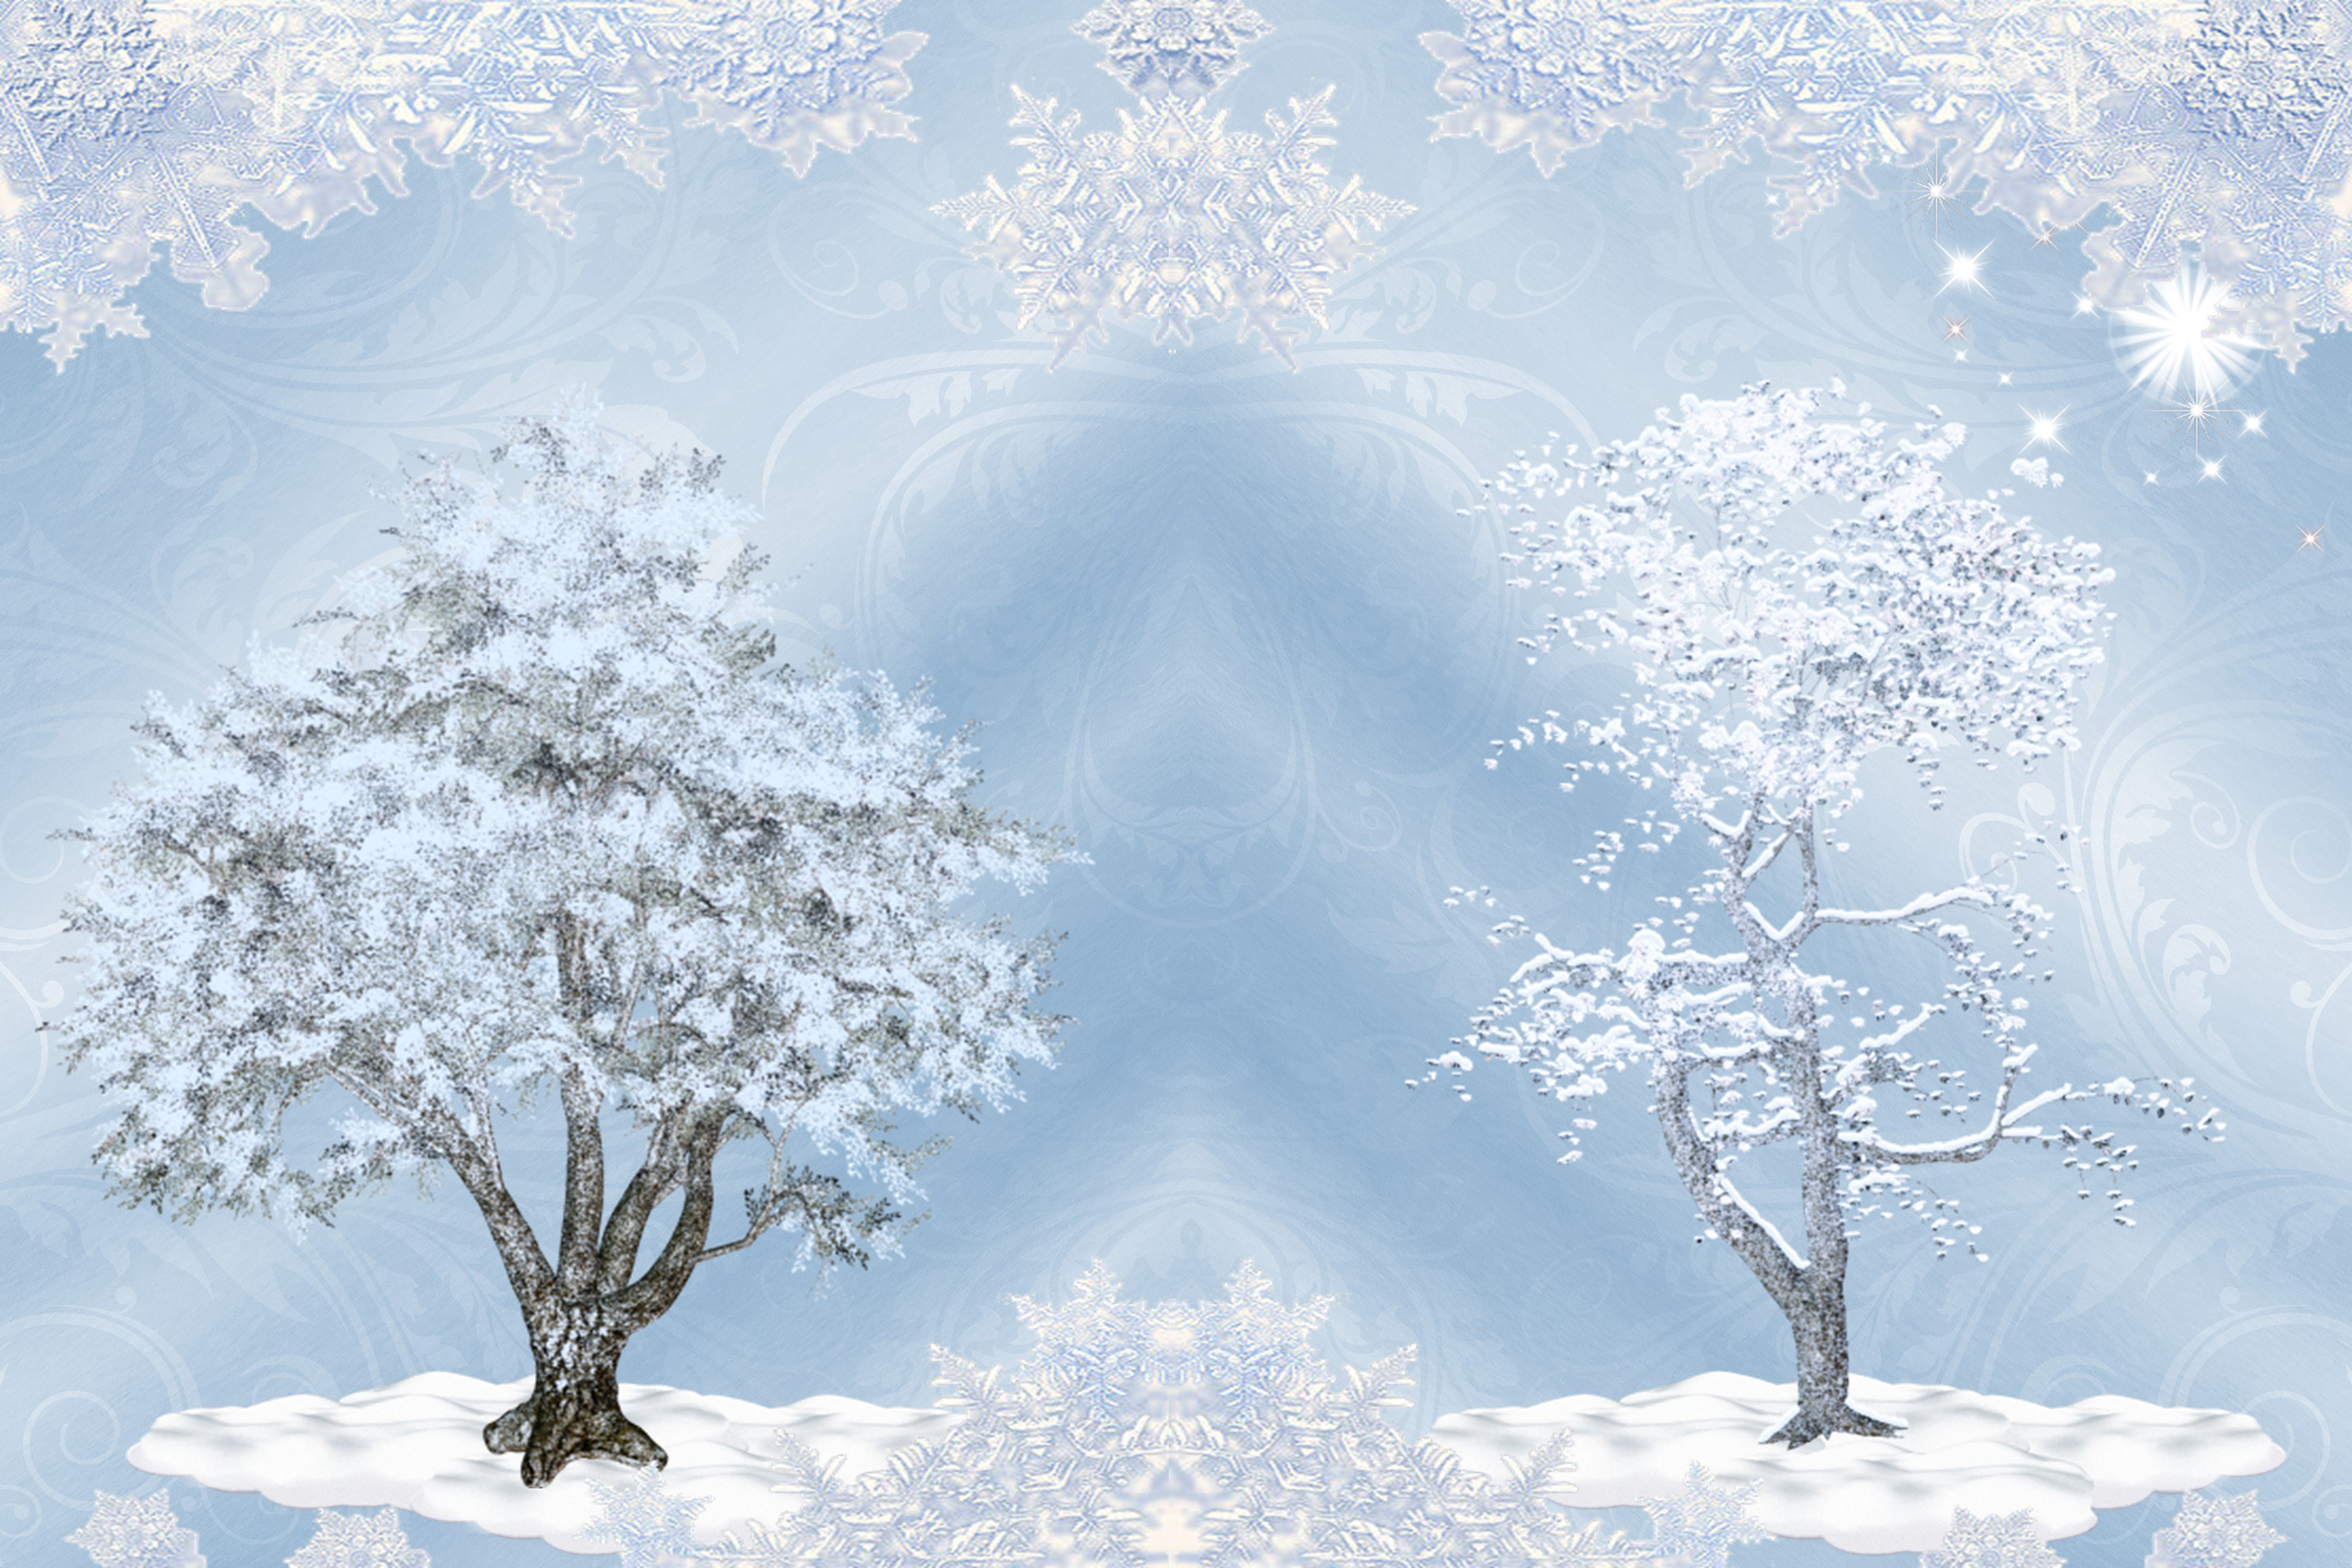 Winter Wonderland Backgrounds Clipart & Free Clip Art Images.